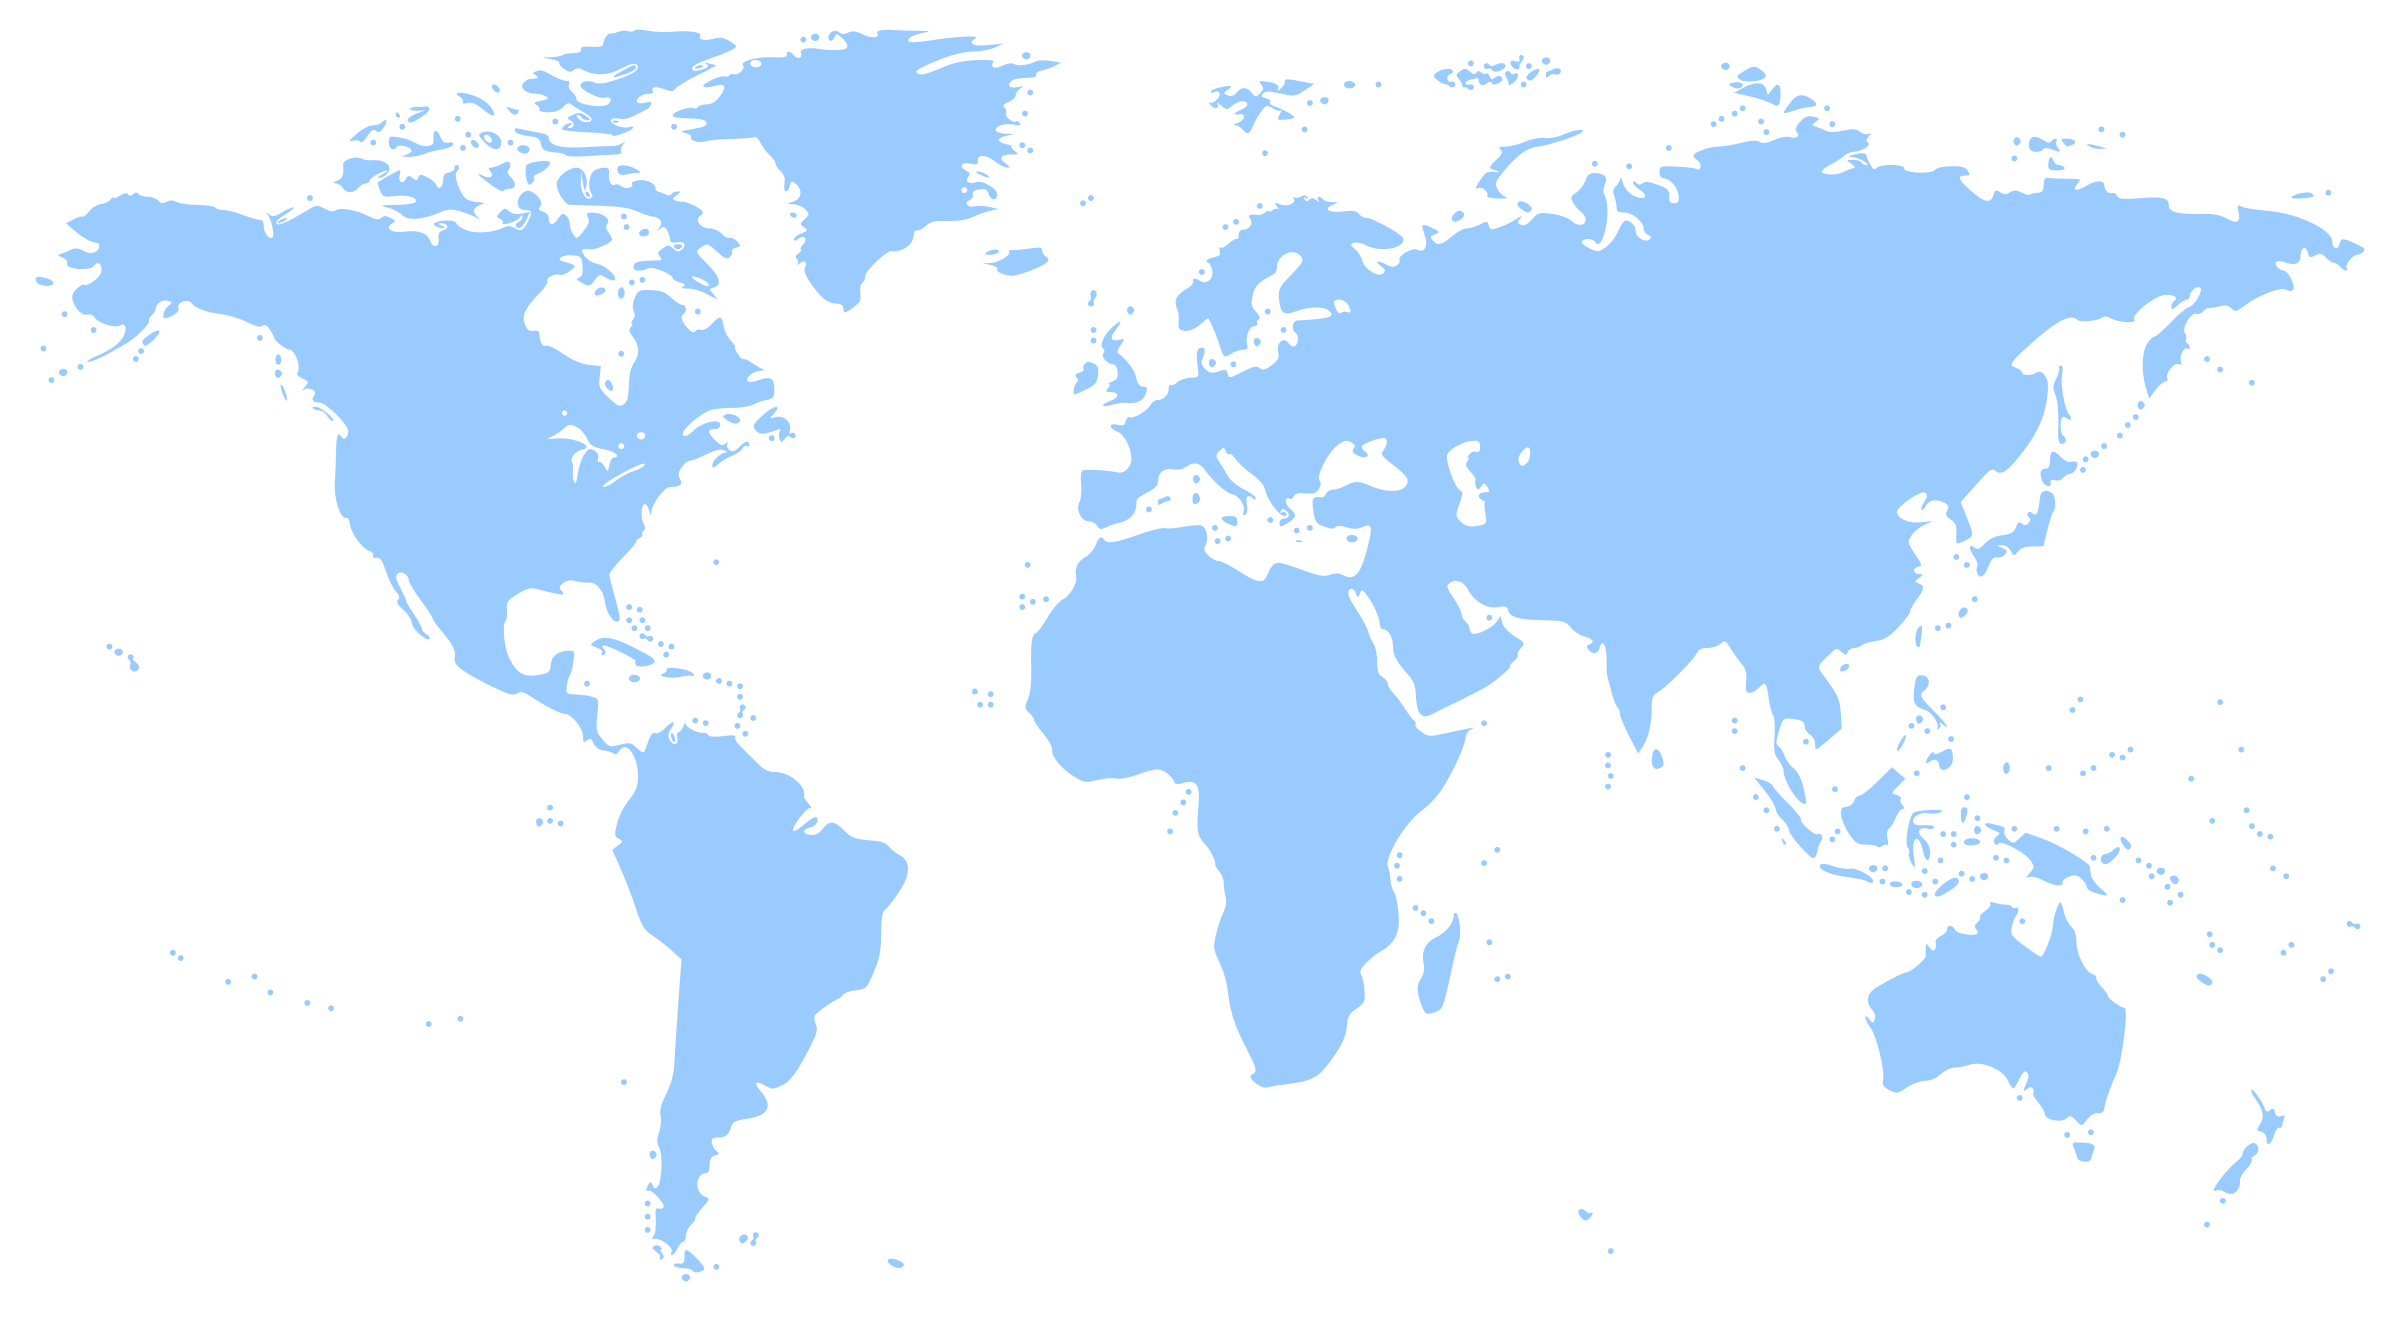 Map of the clipartmonk. Missions clipart world atlas